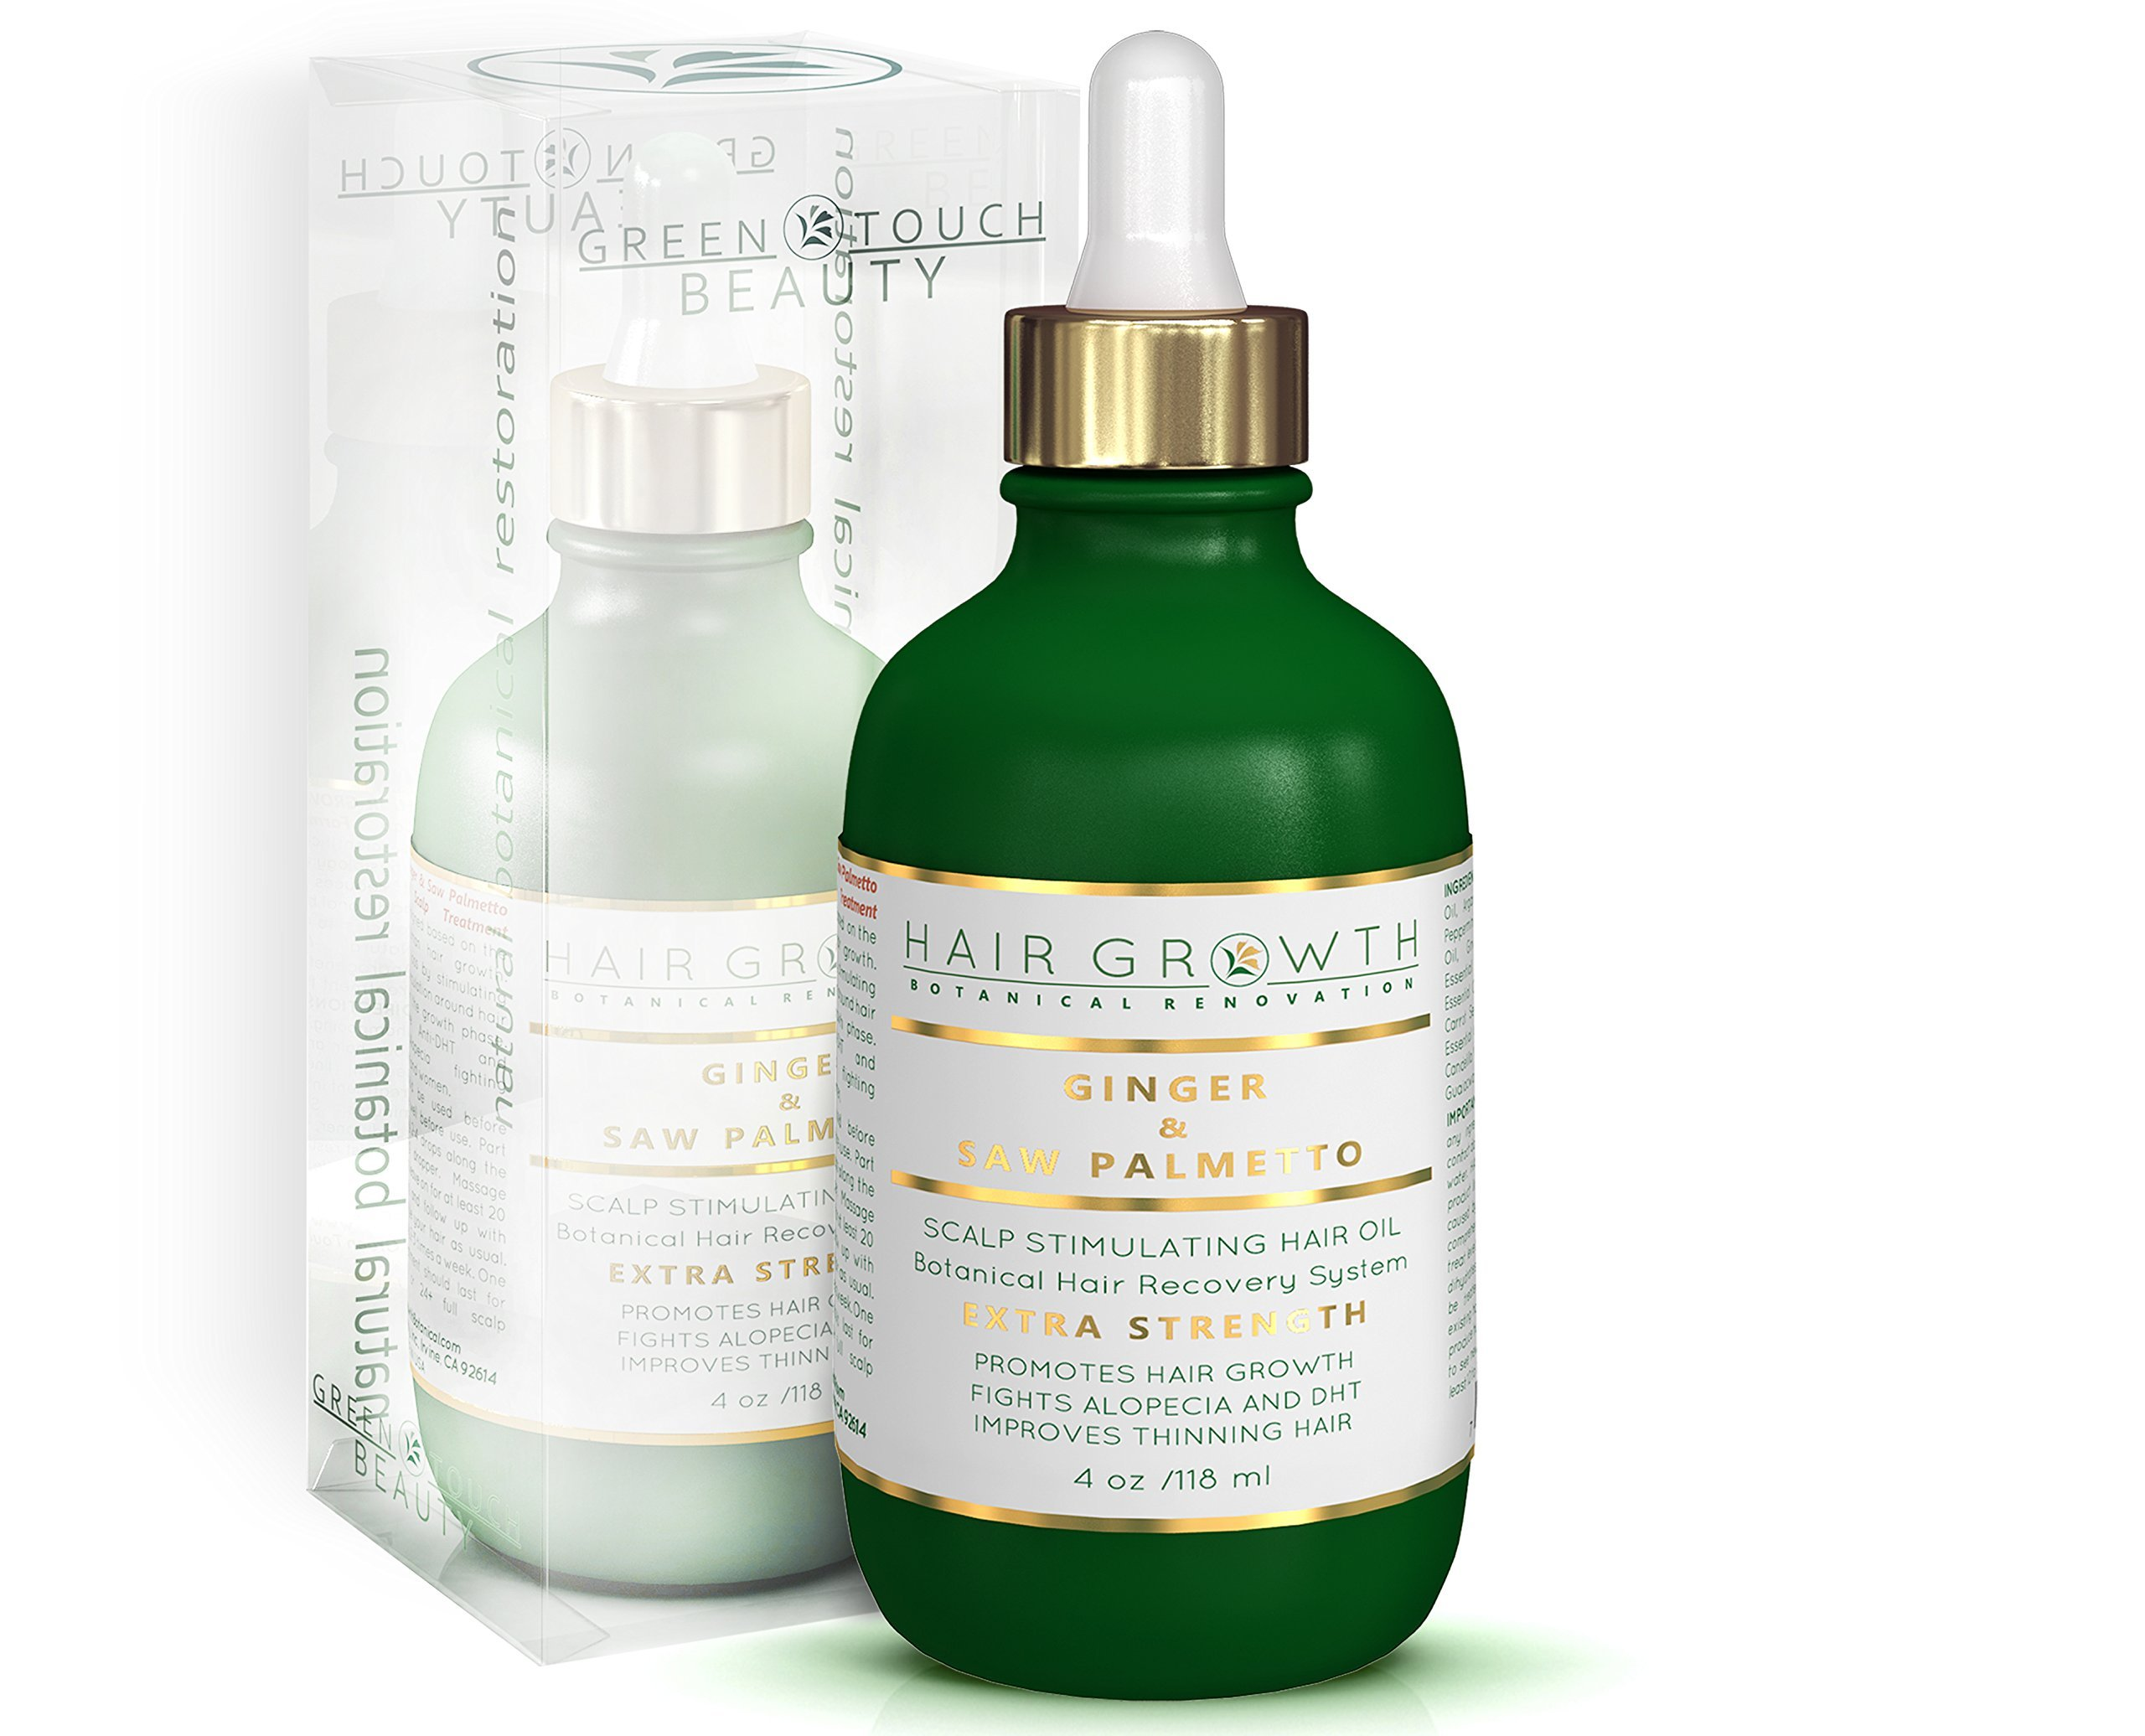 Hair Growth Treatment Step 1: Ginger-Saw Palmetto Lab Formulated Anti-Hair Loss Botanical DHT Blocker and Alopecia Prevention 4 Oz